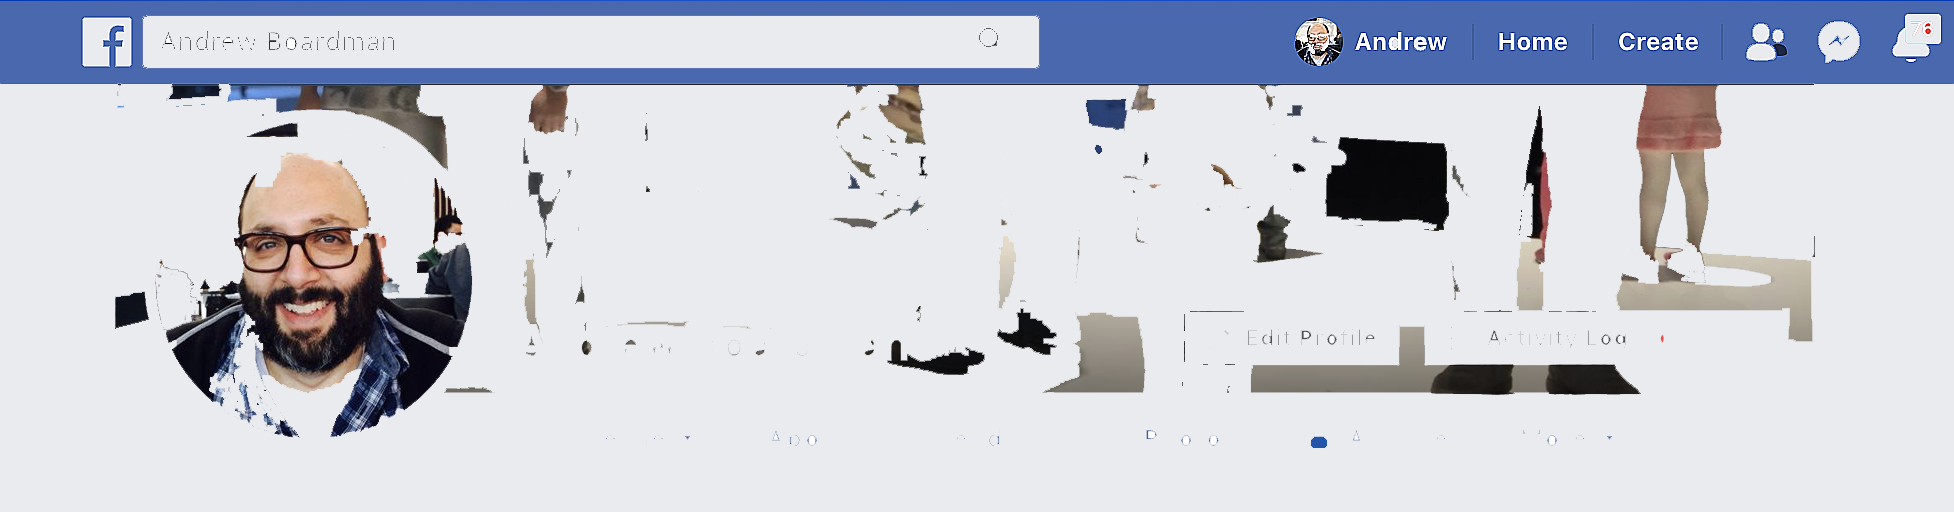 Destroyed screenshot of the top of Facebook profile.